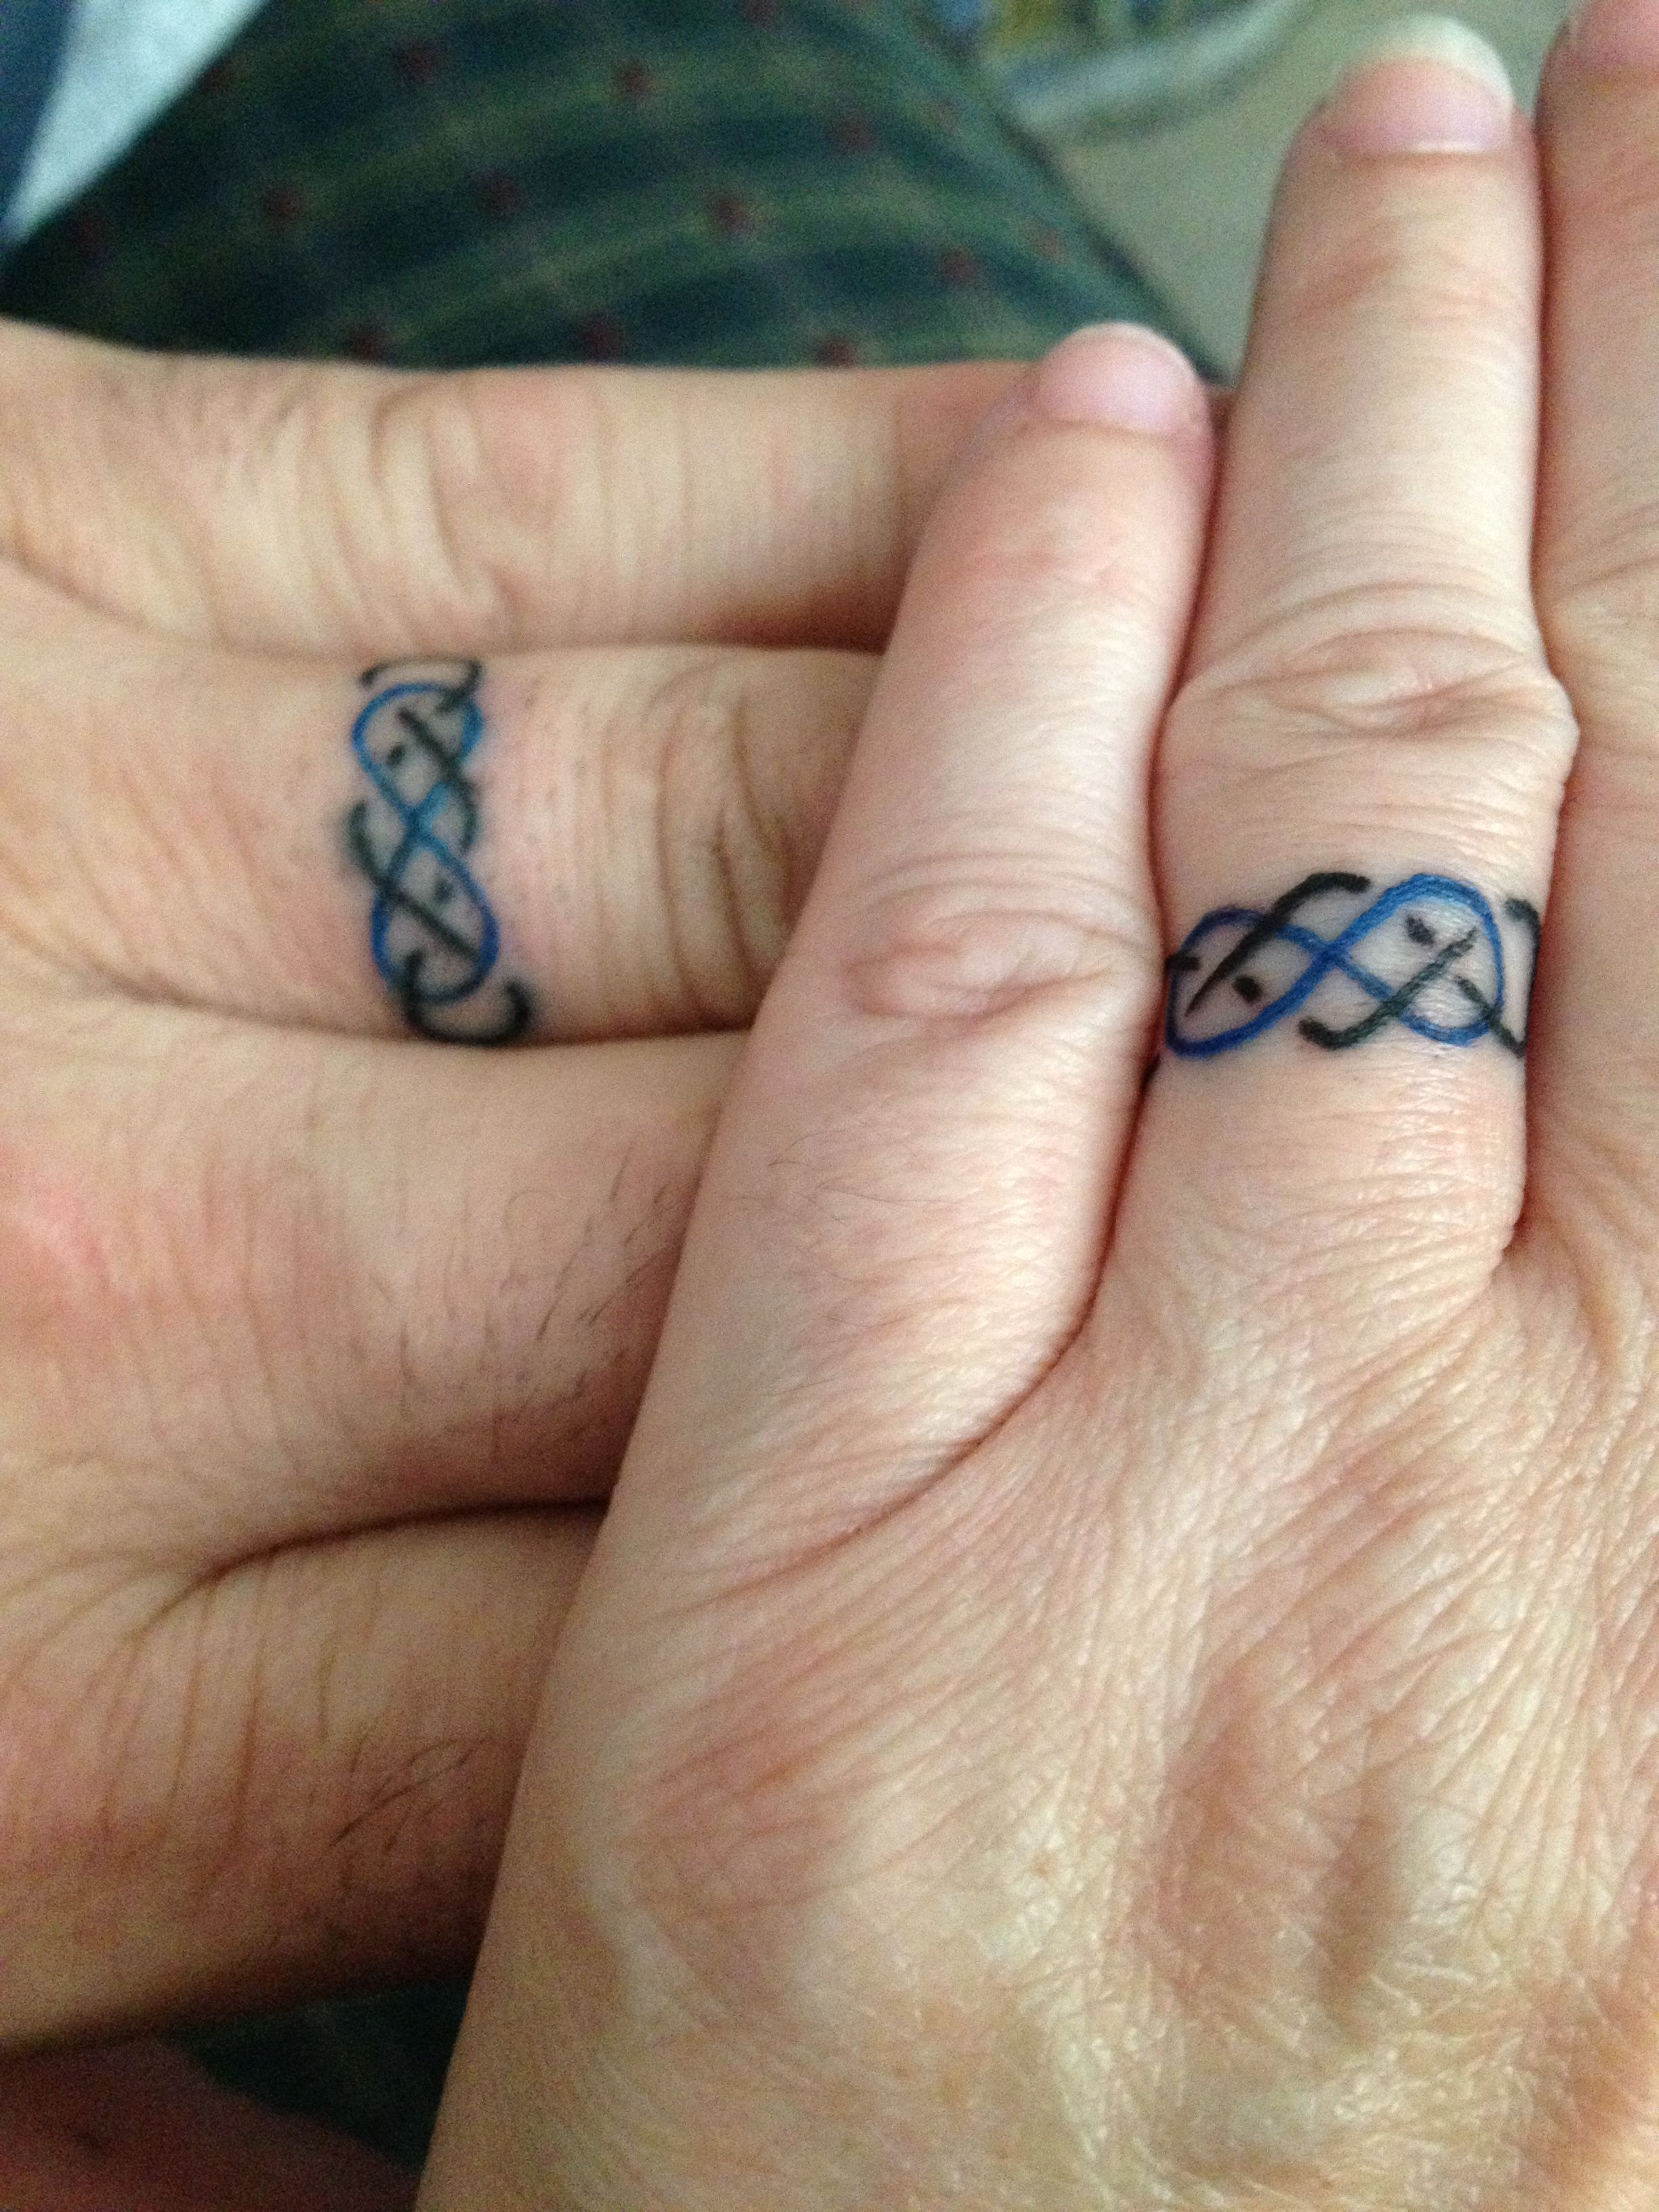 pagan wedding rings If this is the only Tattoo I have it will be perfect